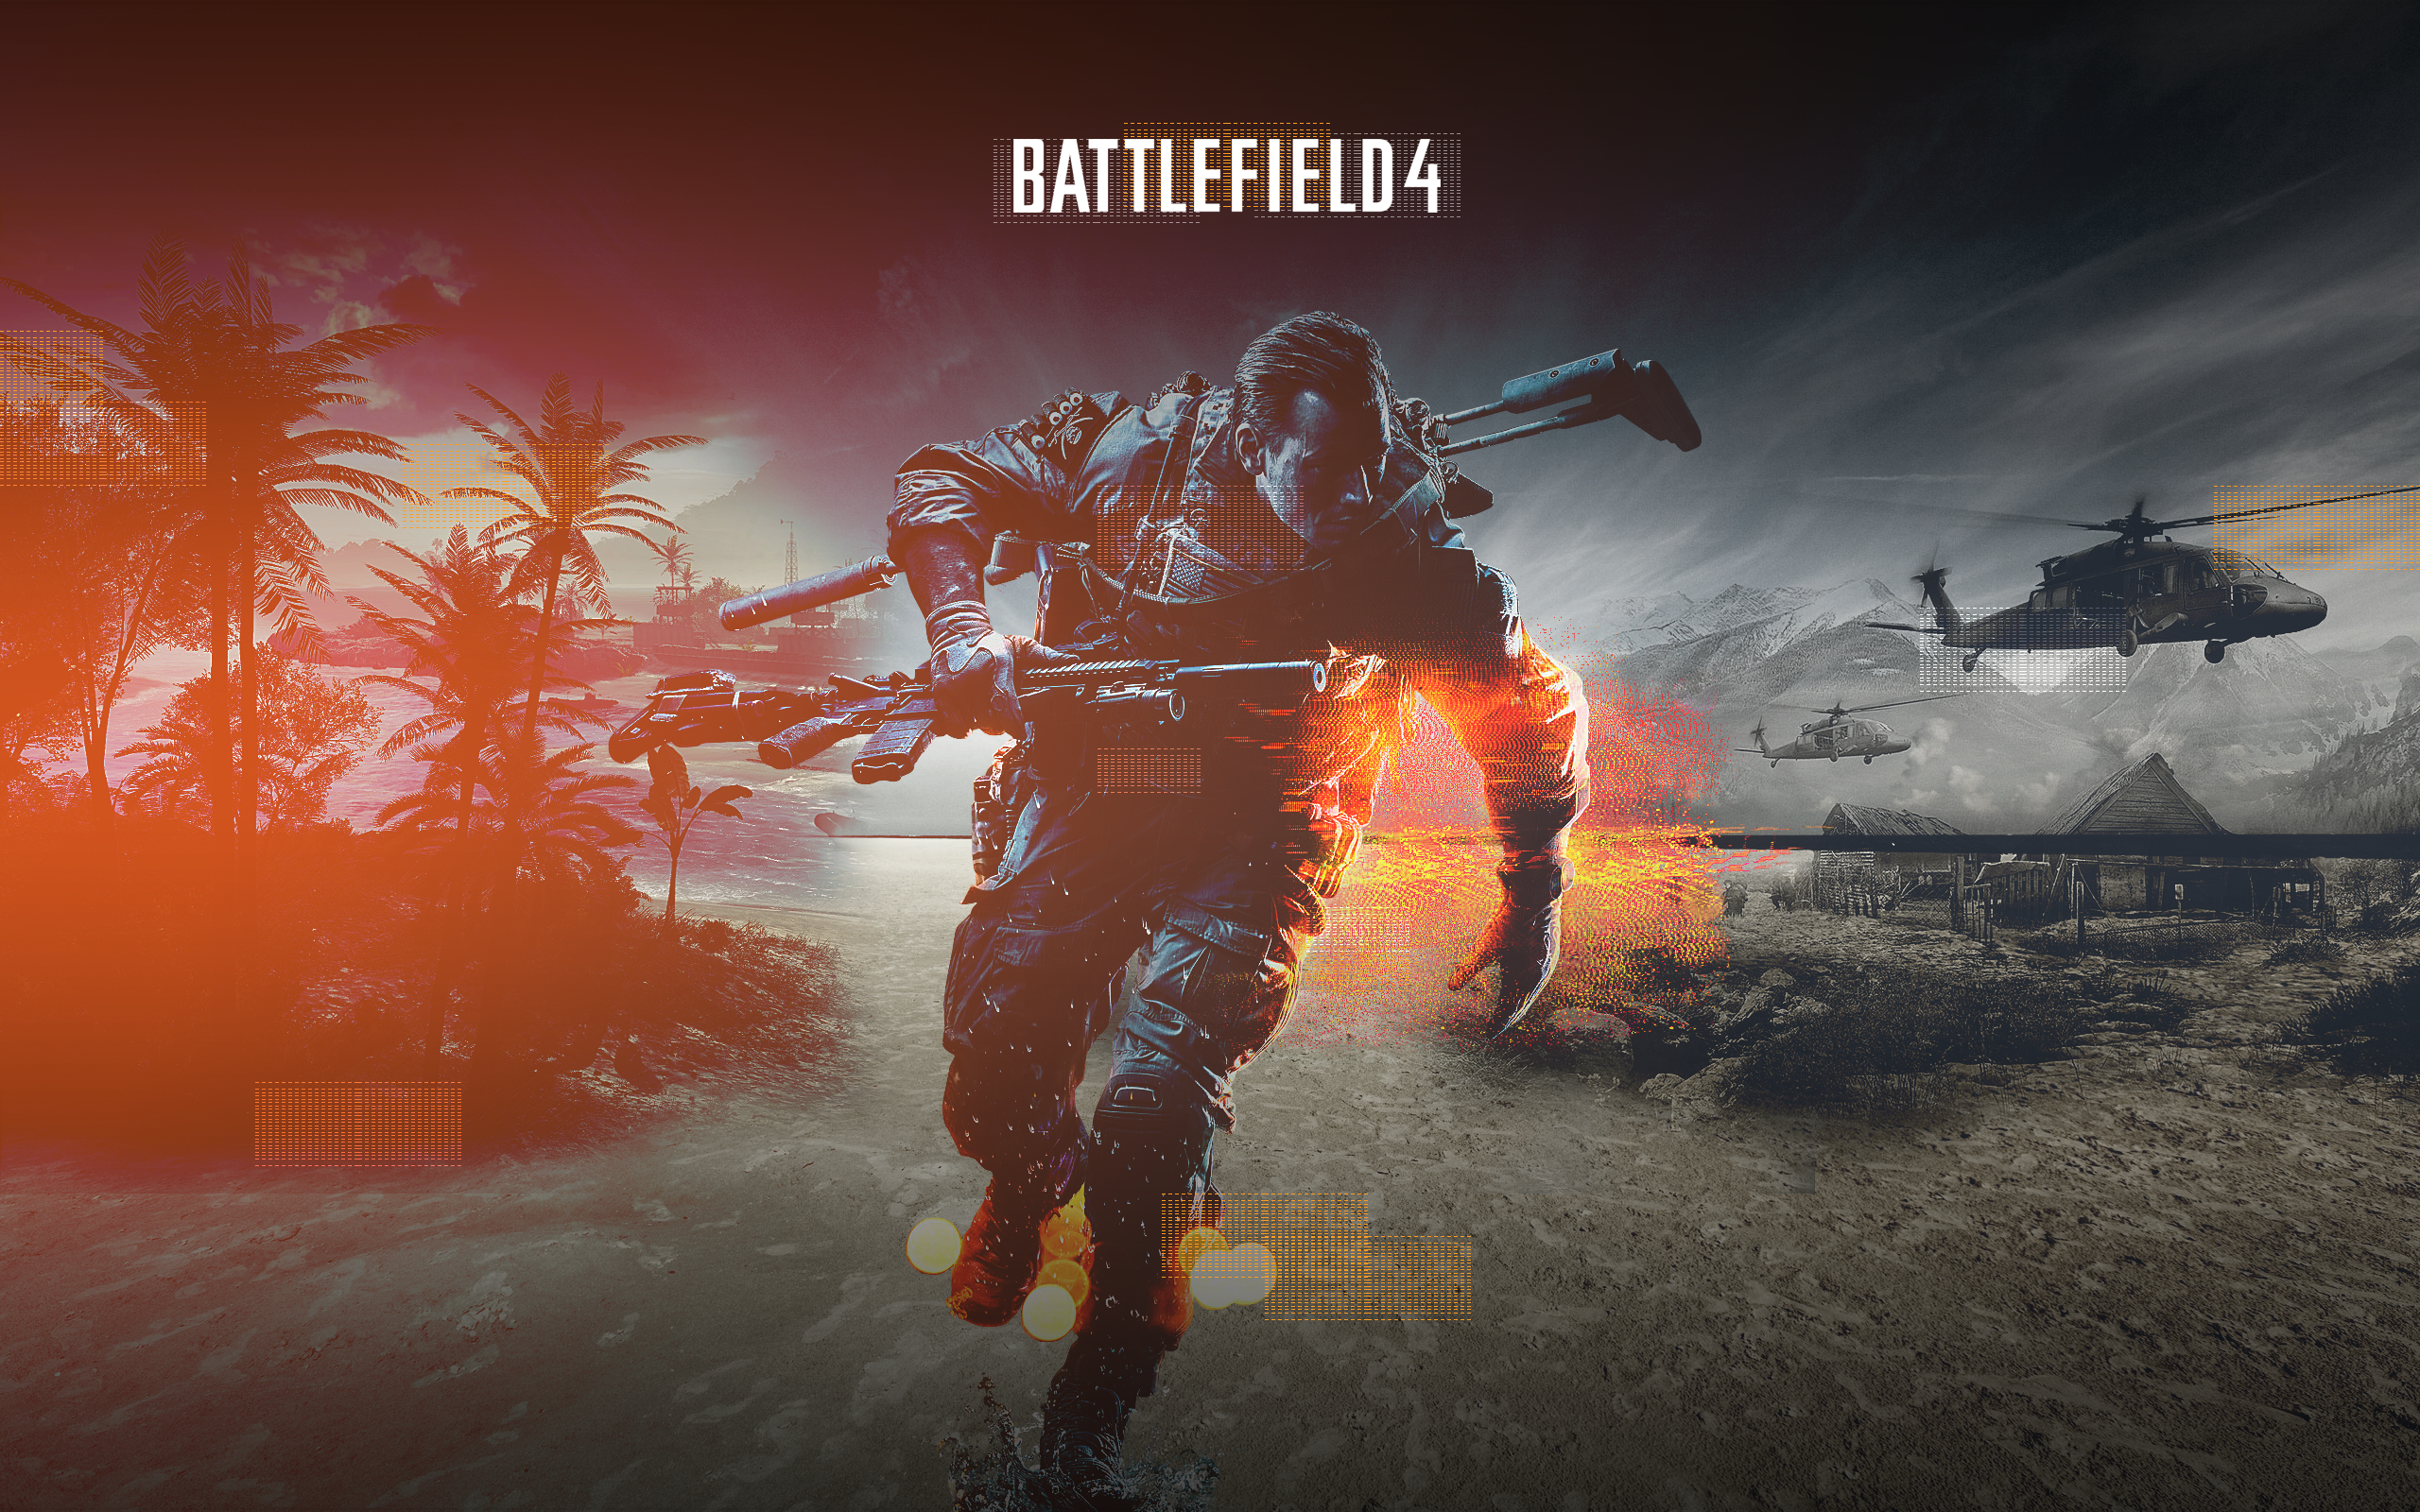 battlefield 4 hd fan wallpaper by danielskrzypon on